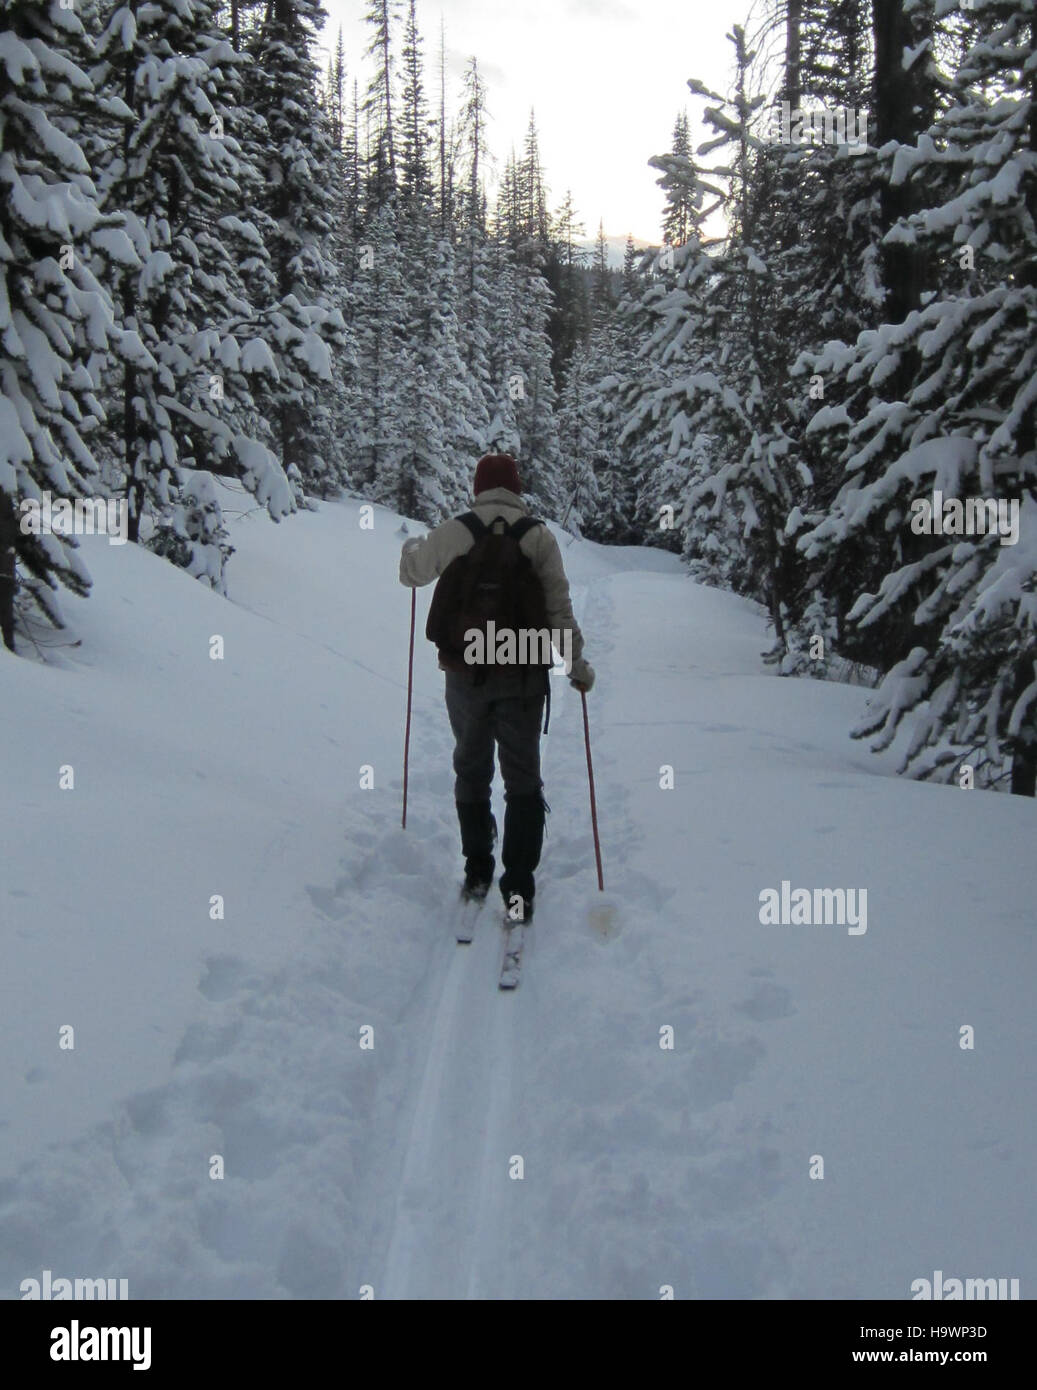 An outdoors enthusiast cross-country skiing near Cameron Pass - Stock Image